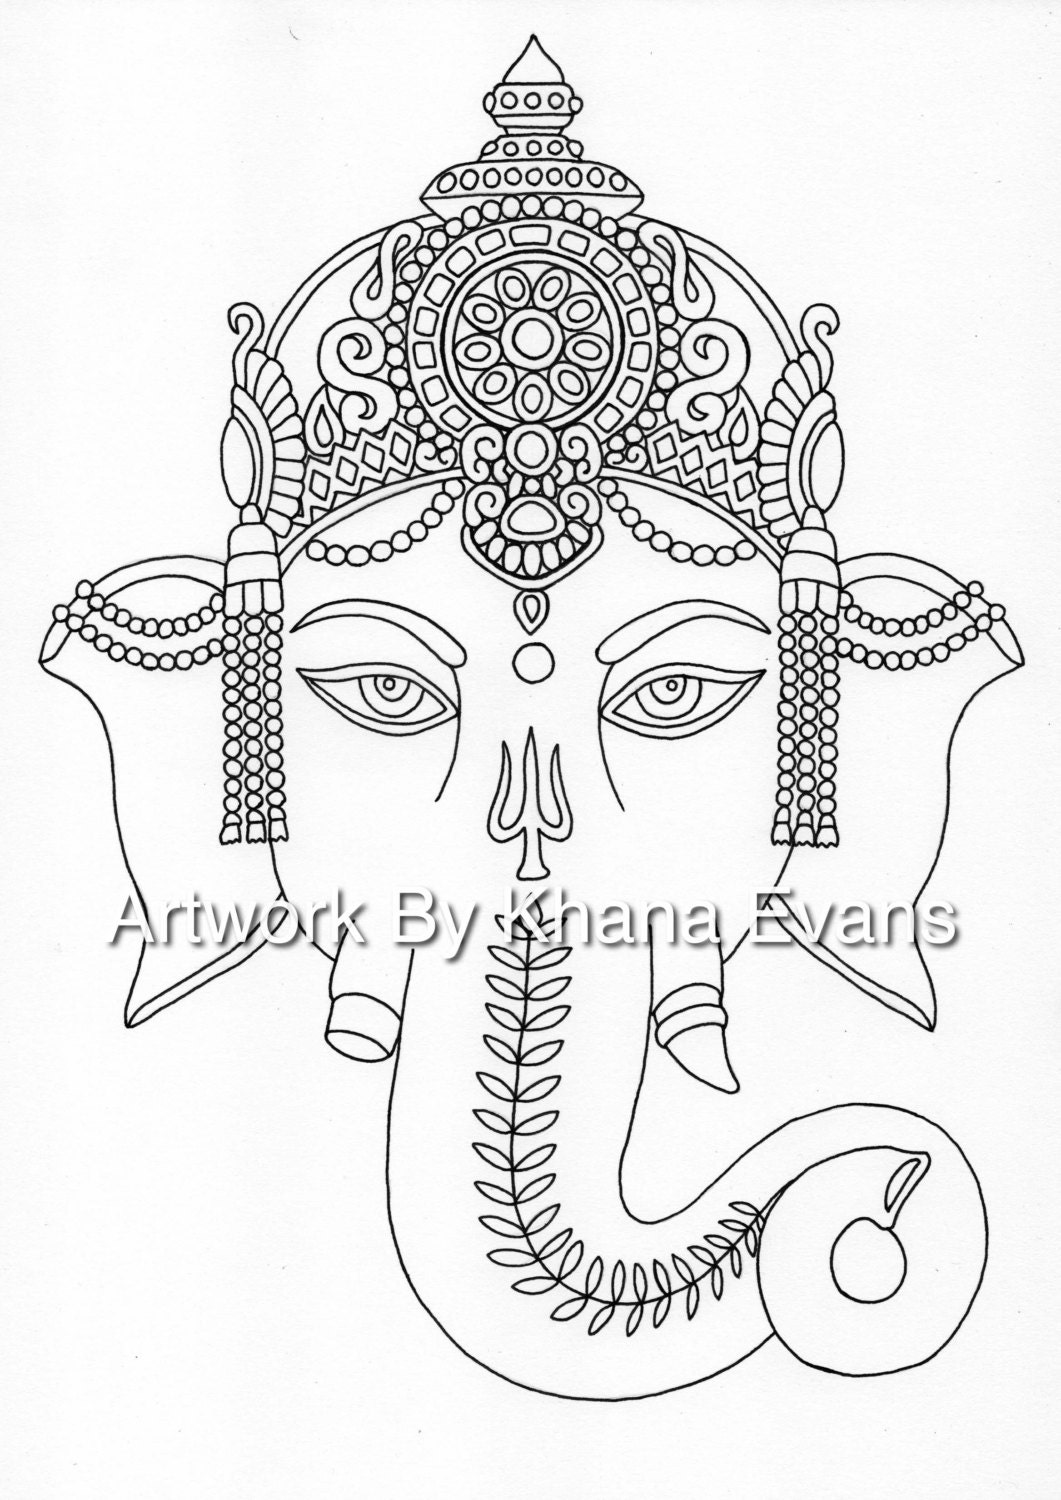 ganesh indian tattoo design pdf a4 printout colouring page etsy